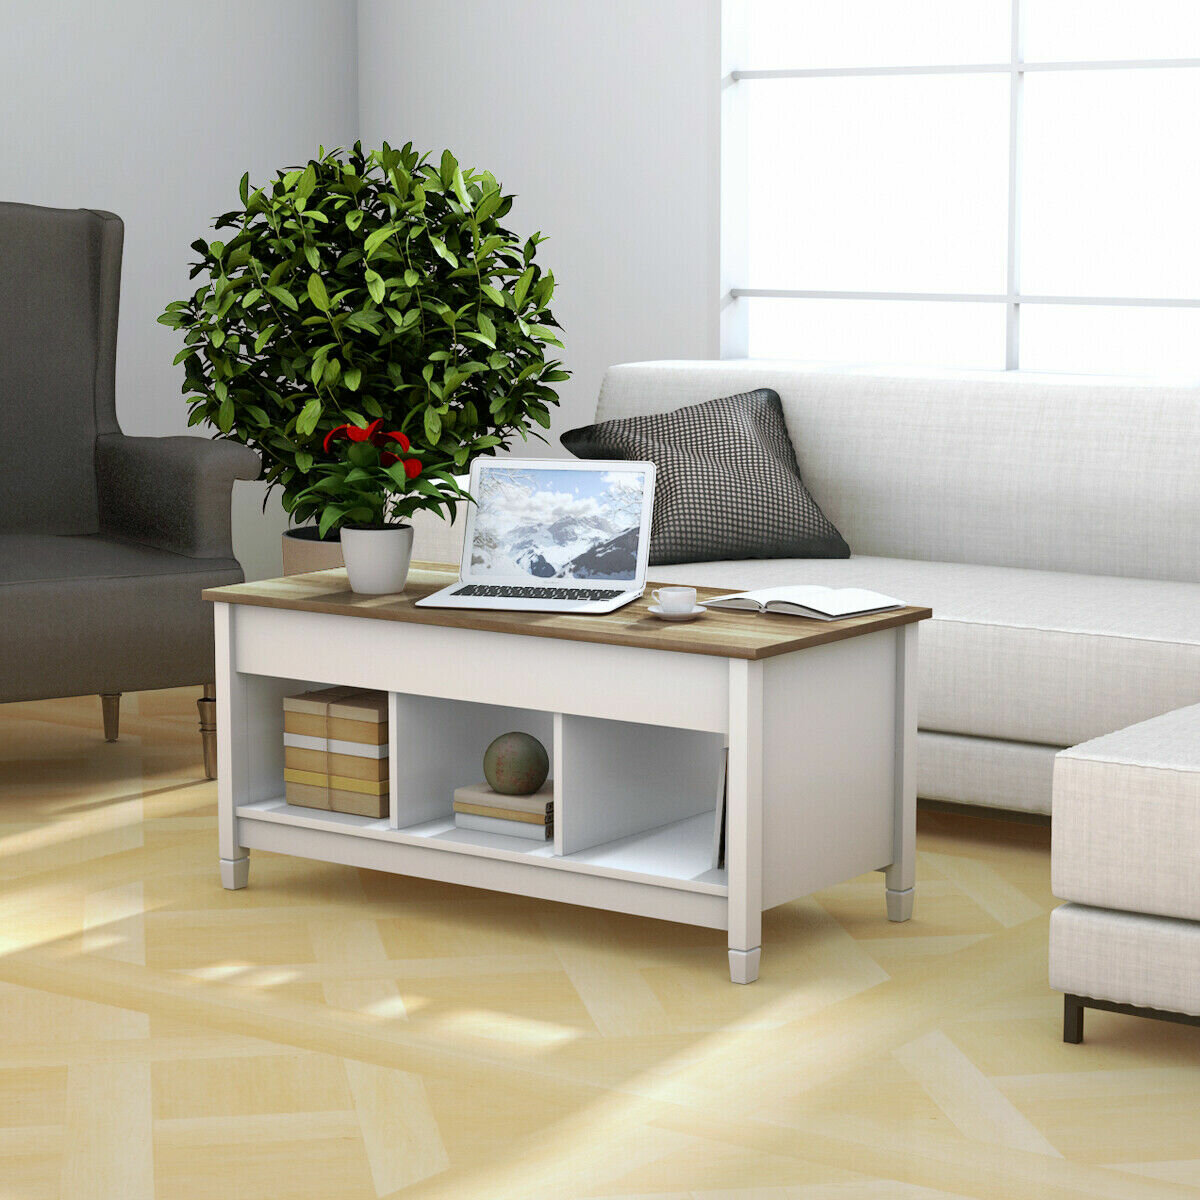 Highland Dunes Alina Lift Top Coffee Table With Storage Reviews Wayfair